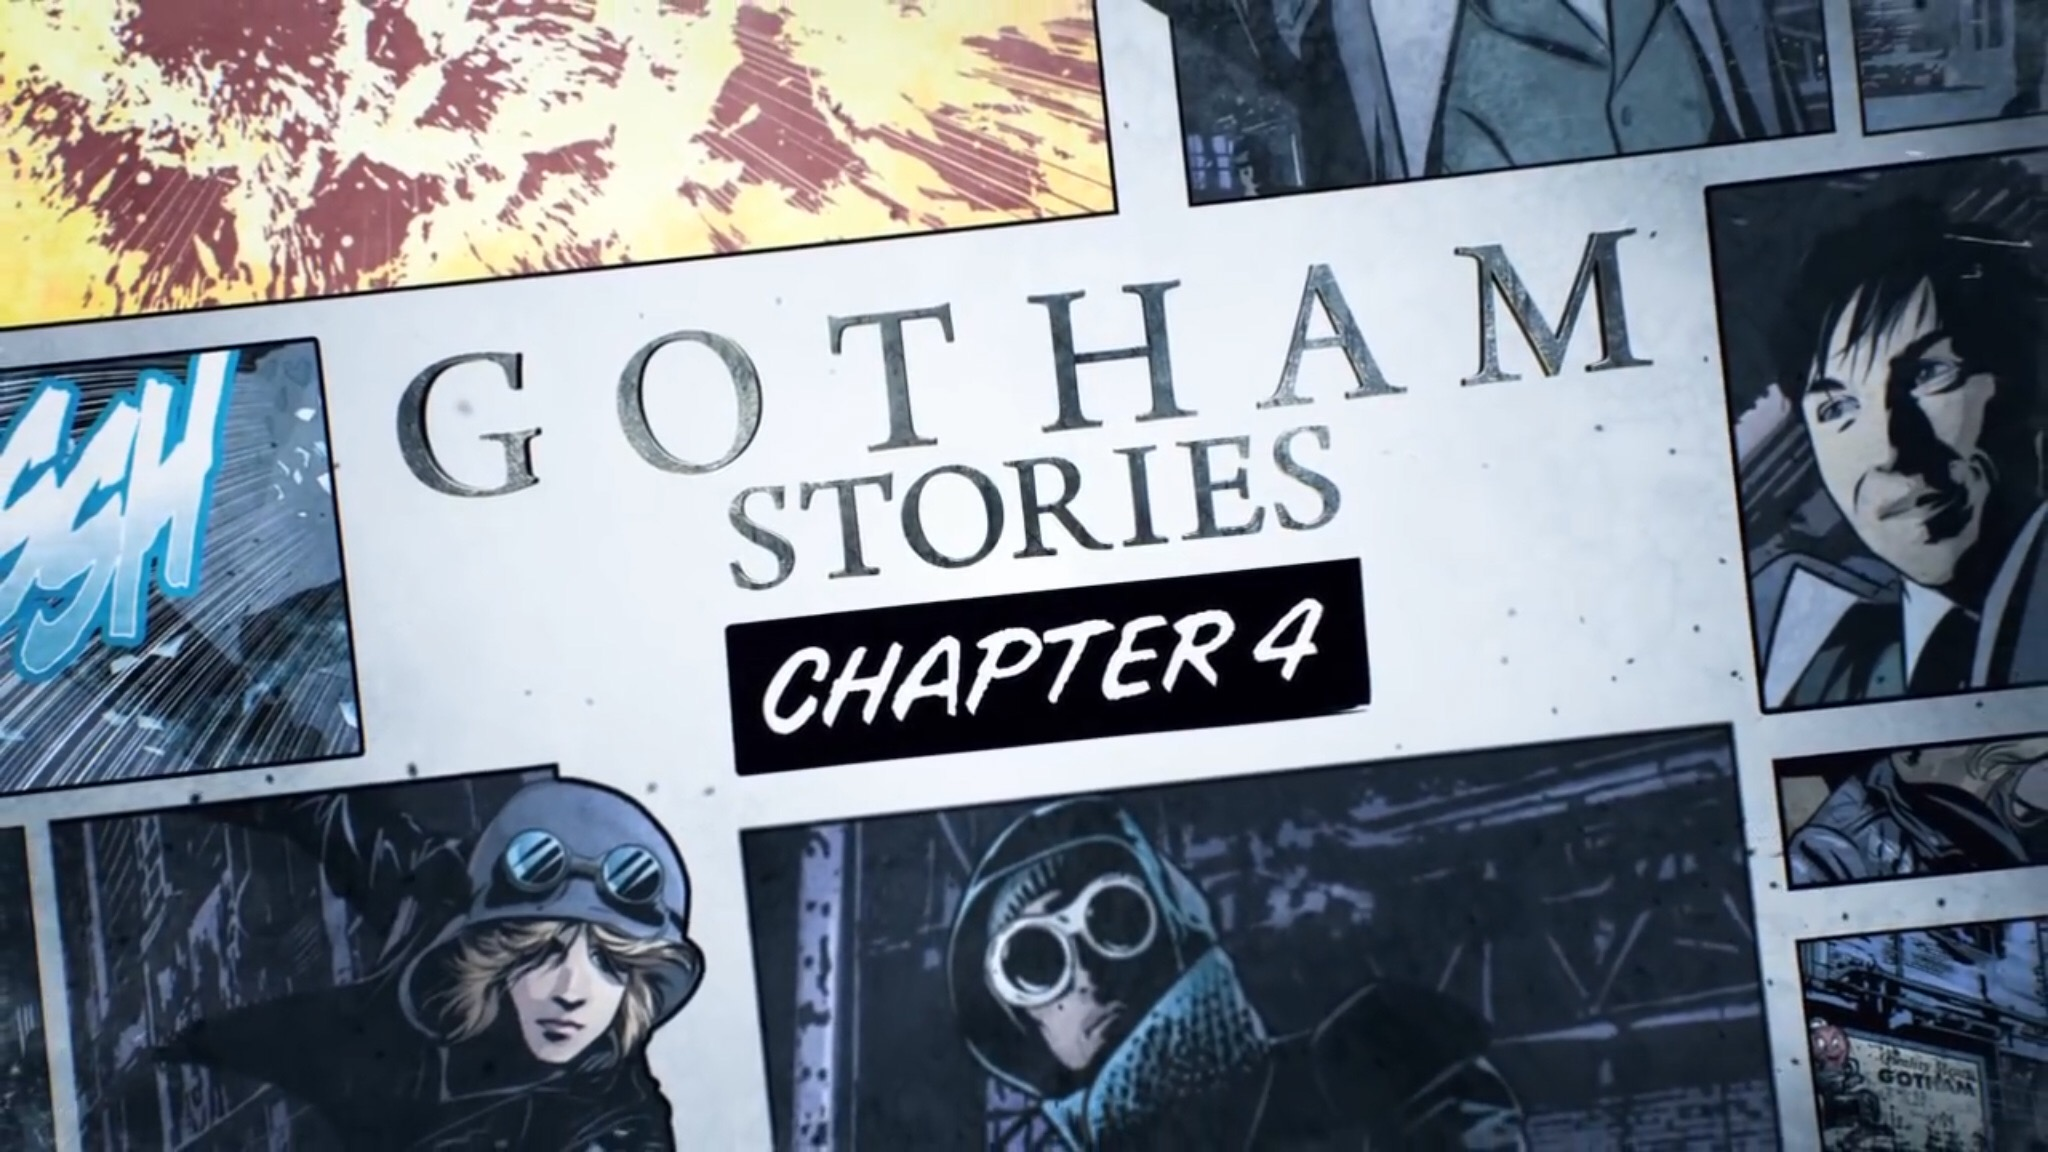 Gotham Stories (Webseries) Episode: Chapter 4